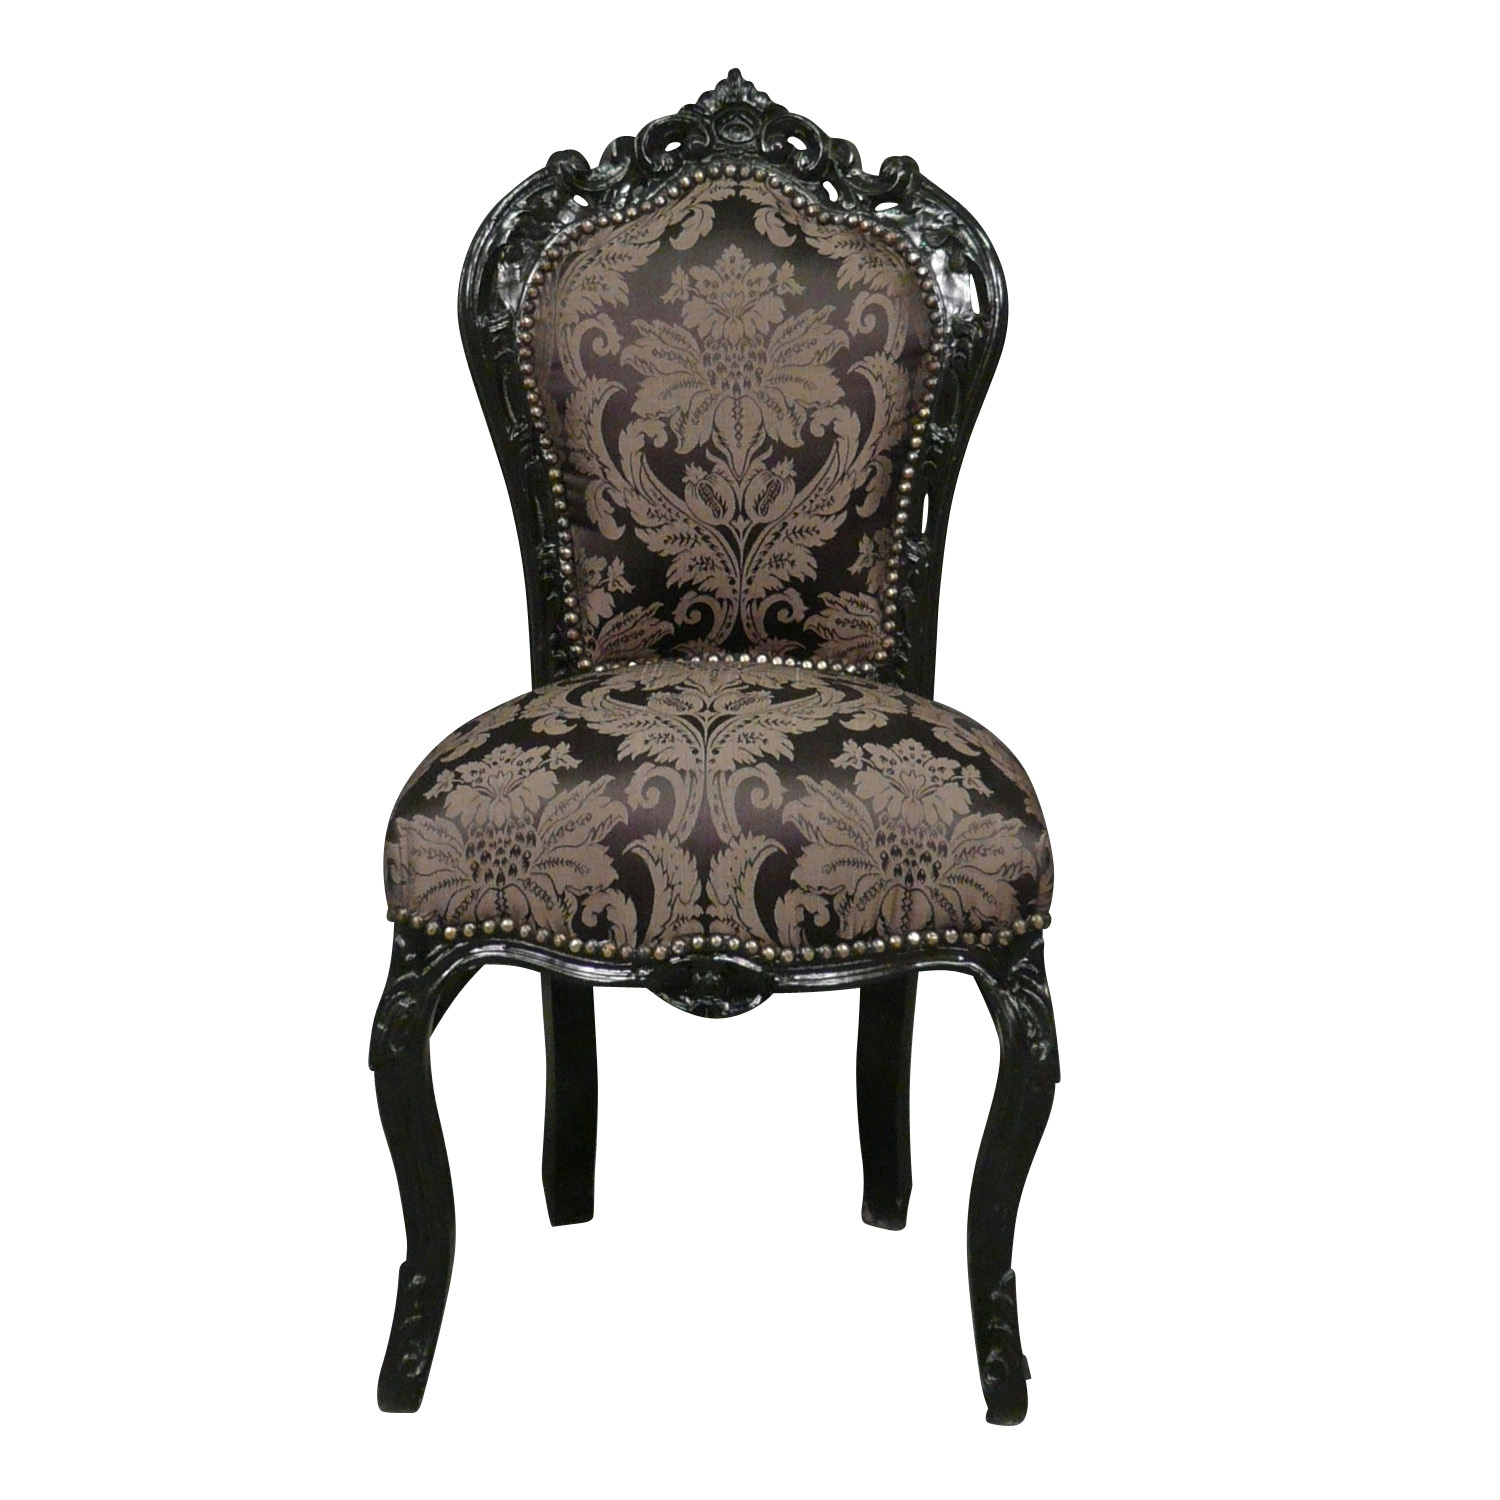 Baroque chair gallery armchair - Chaise baroque transparente ...